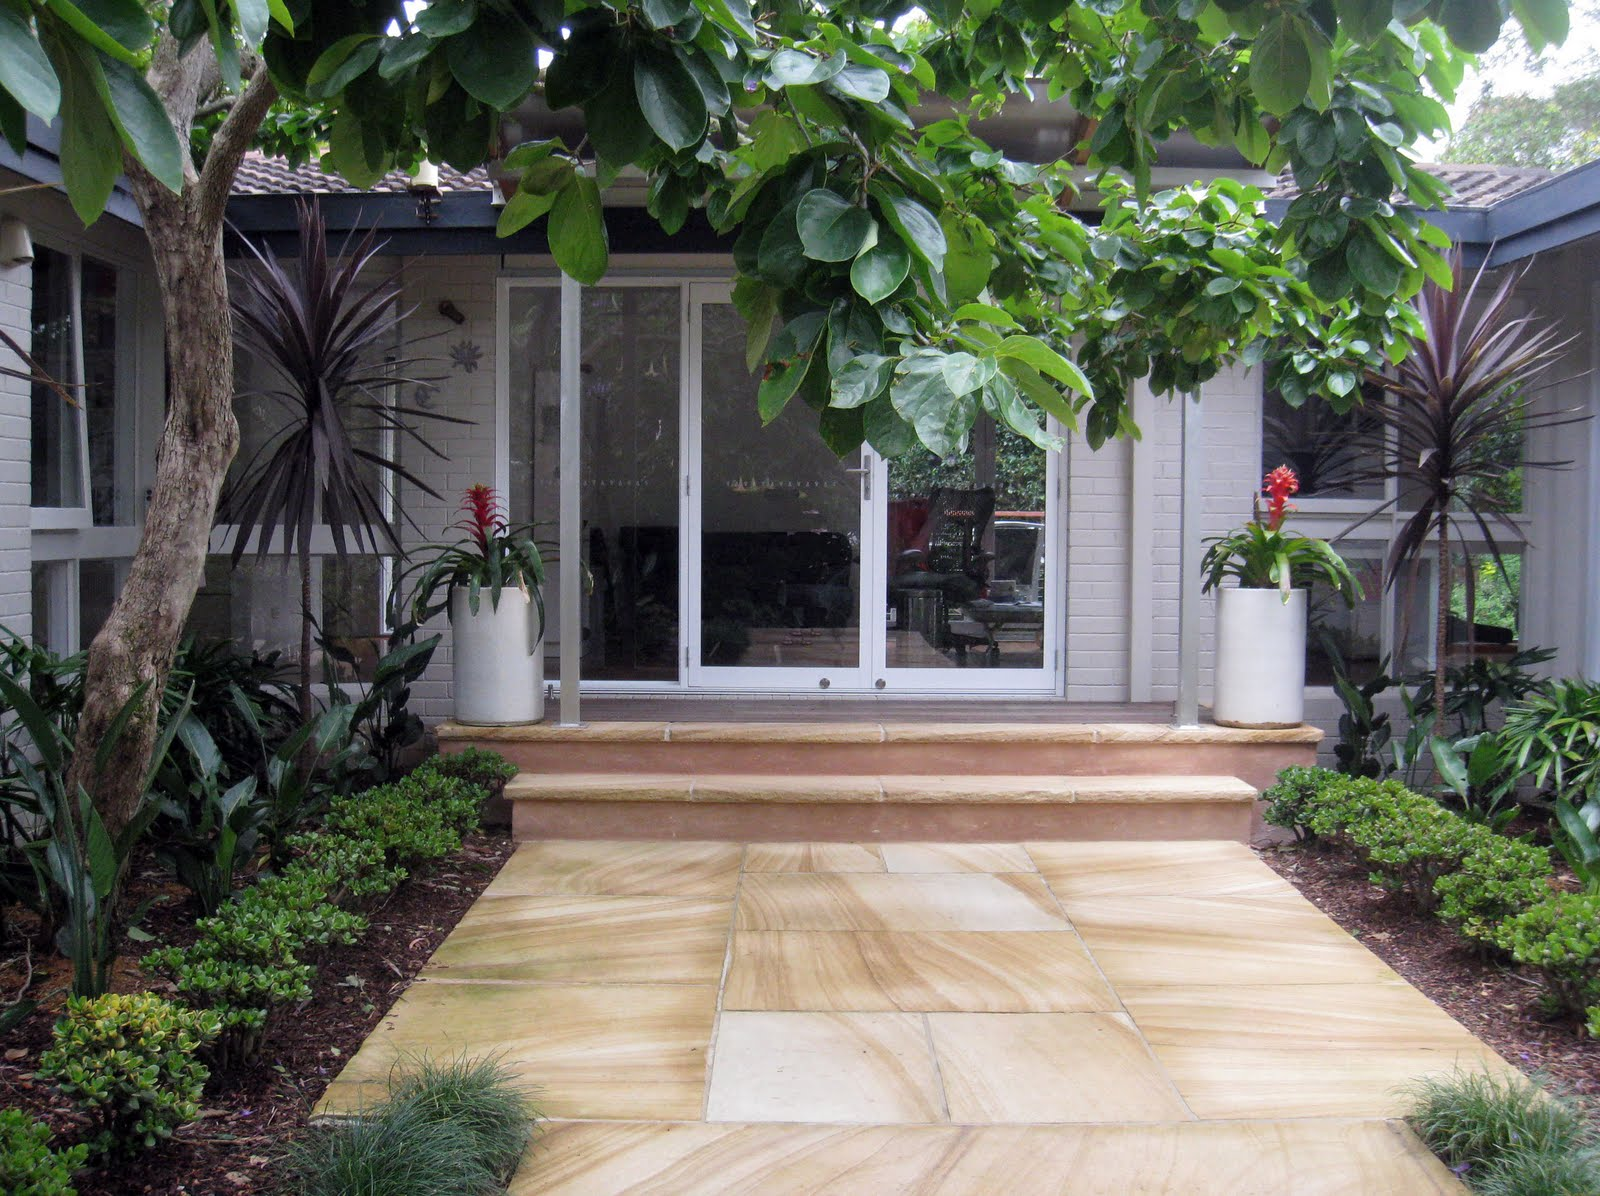 House Of Landscaping Ideas For Front Entrance Garden Design Of